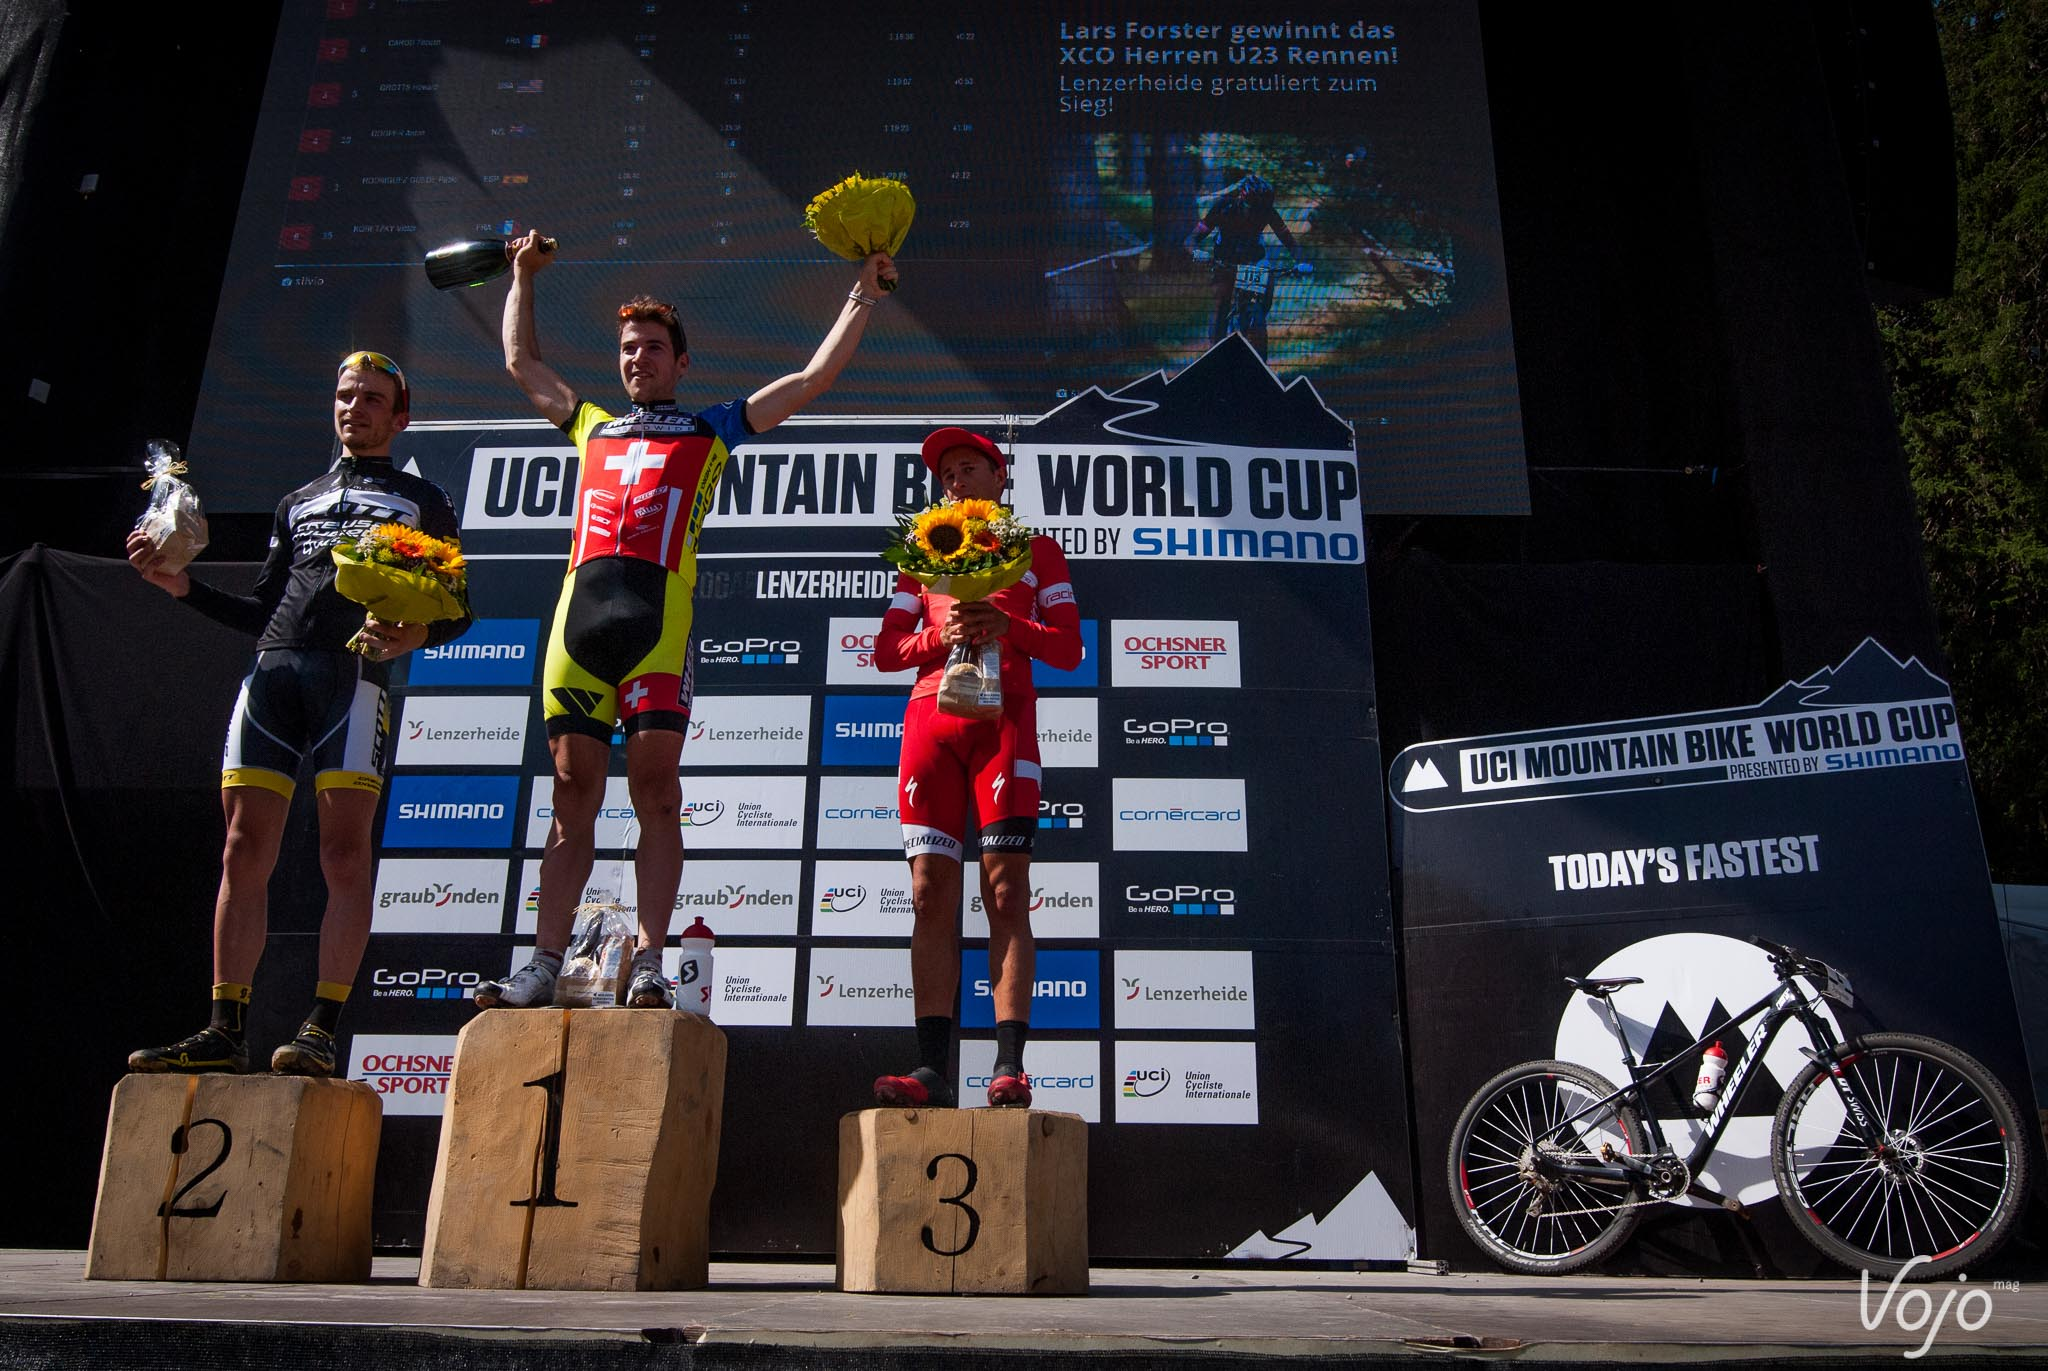 World_Cup_Lenzerheide_Copyright_VojoMag-2